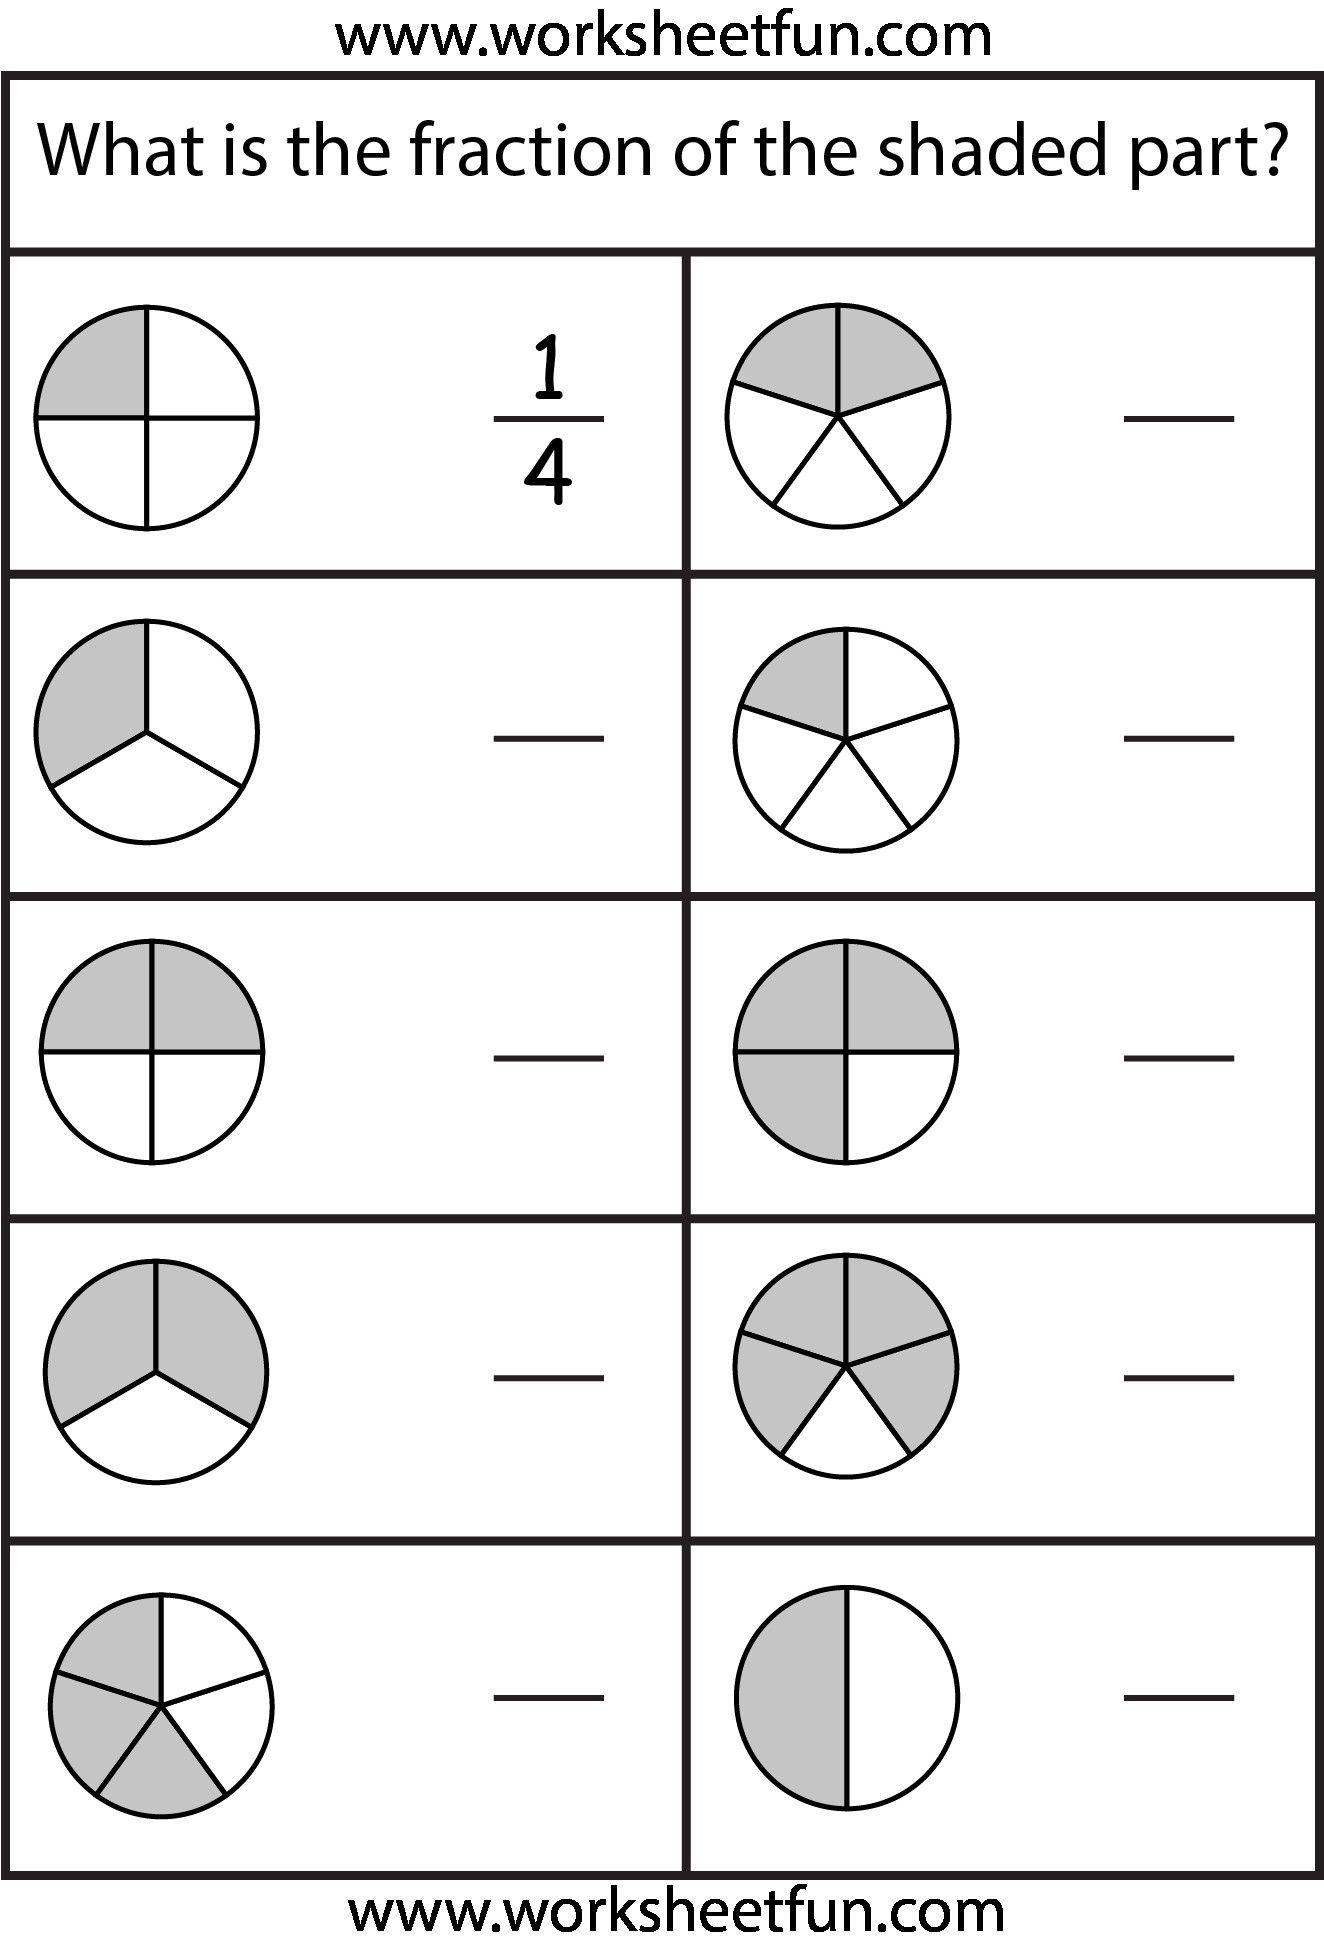 2nd Grade Fraction Worksheets Pin On Grade Sheet Template Worksheets